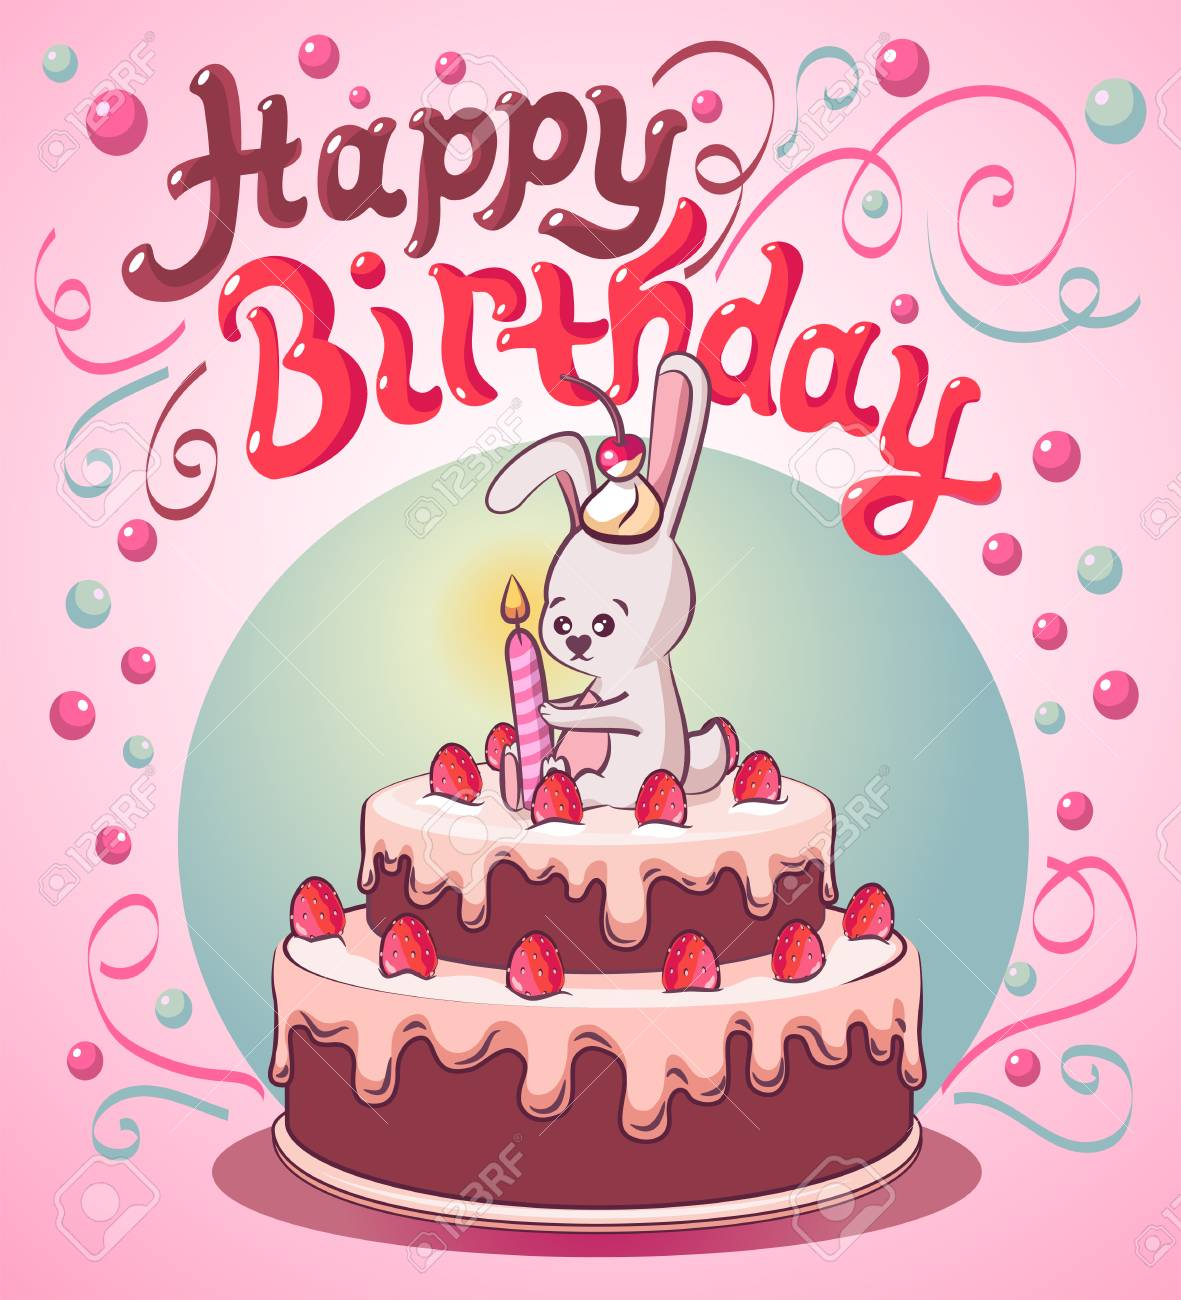 Awesome Happy Birthday Cake With Strawberry Royalty Free Cliparts Vectors Funny Birthday Cards Online Alyptdamsfinfo